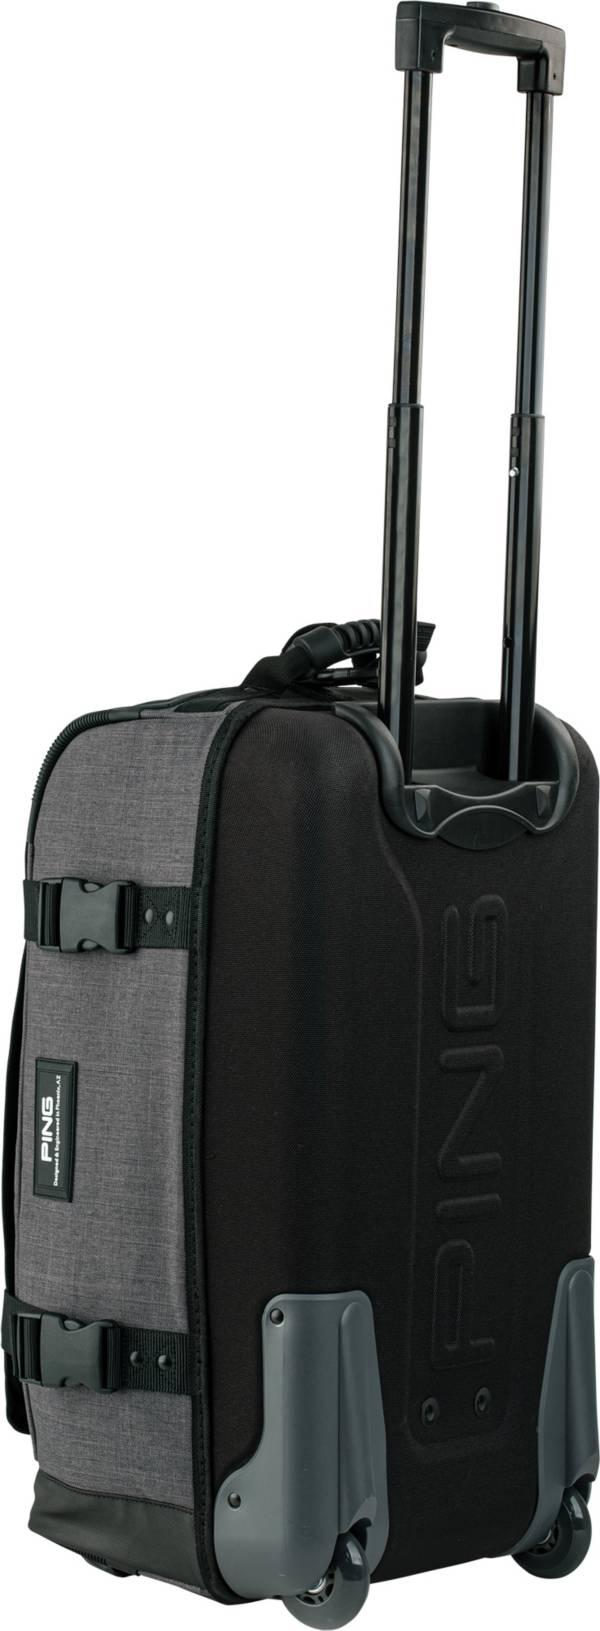 PING Rolling Duffle Bag product image